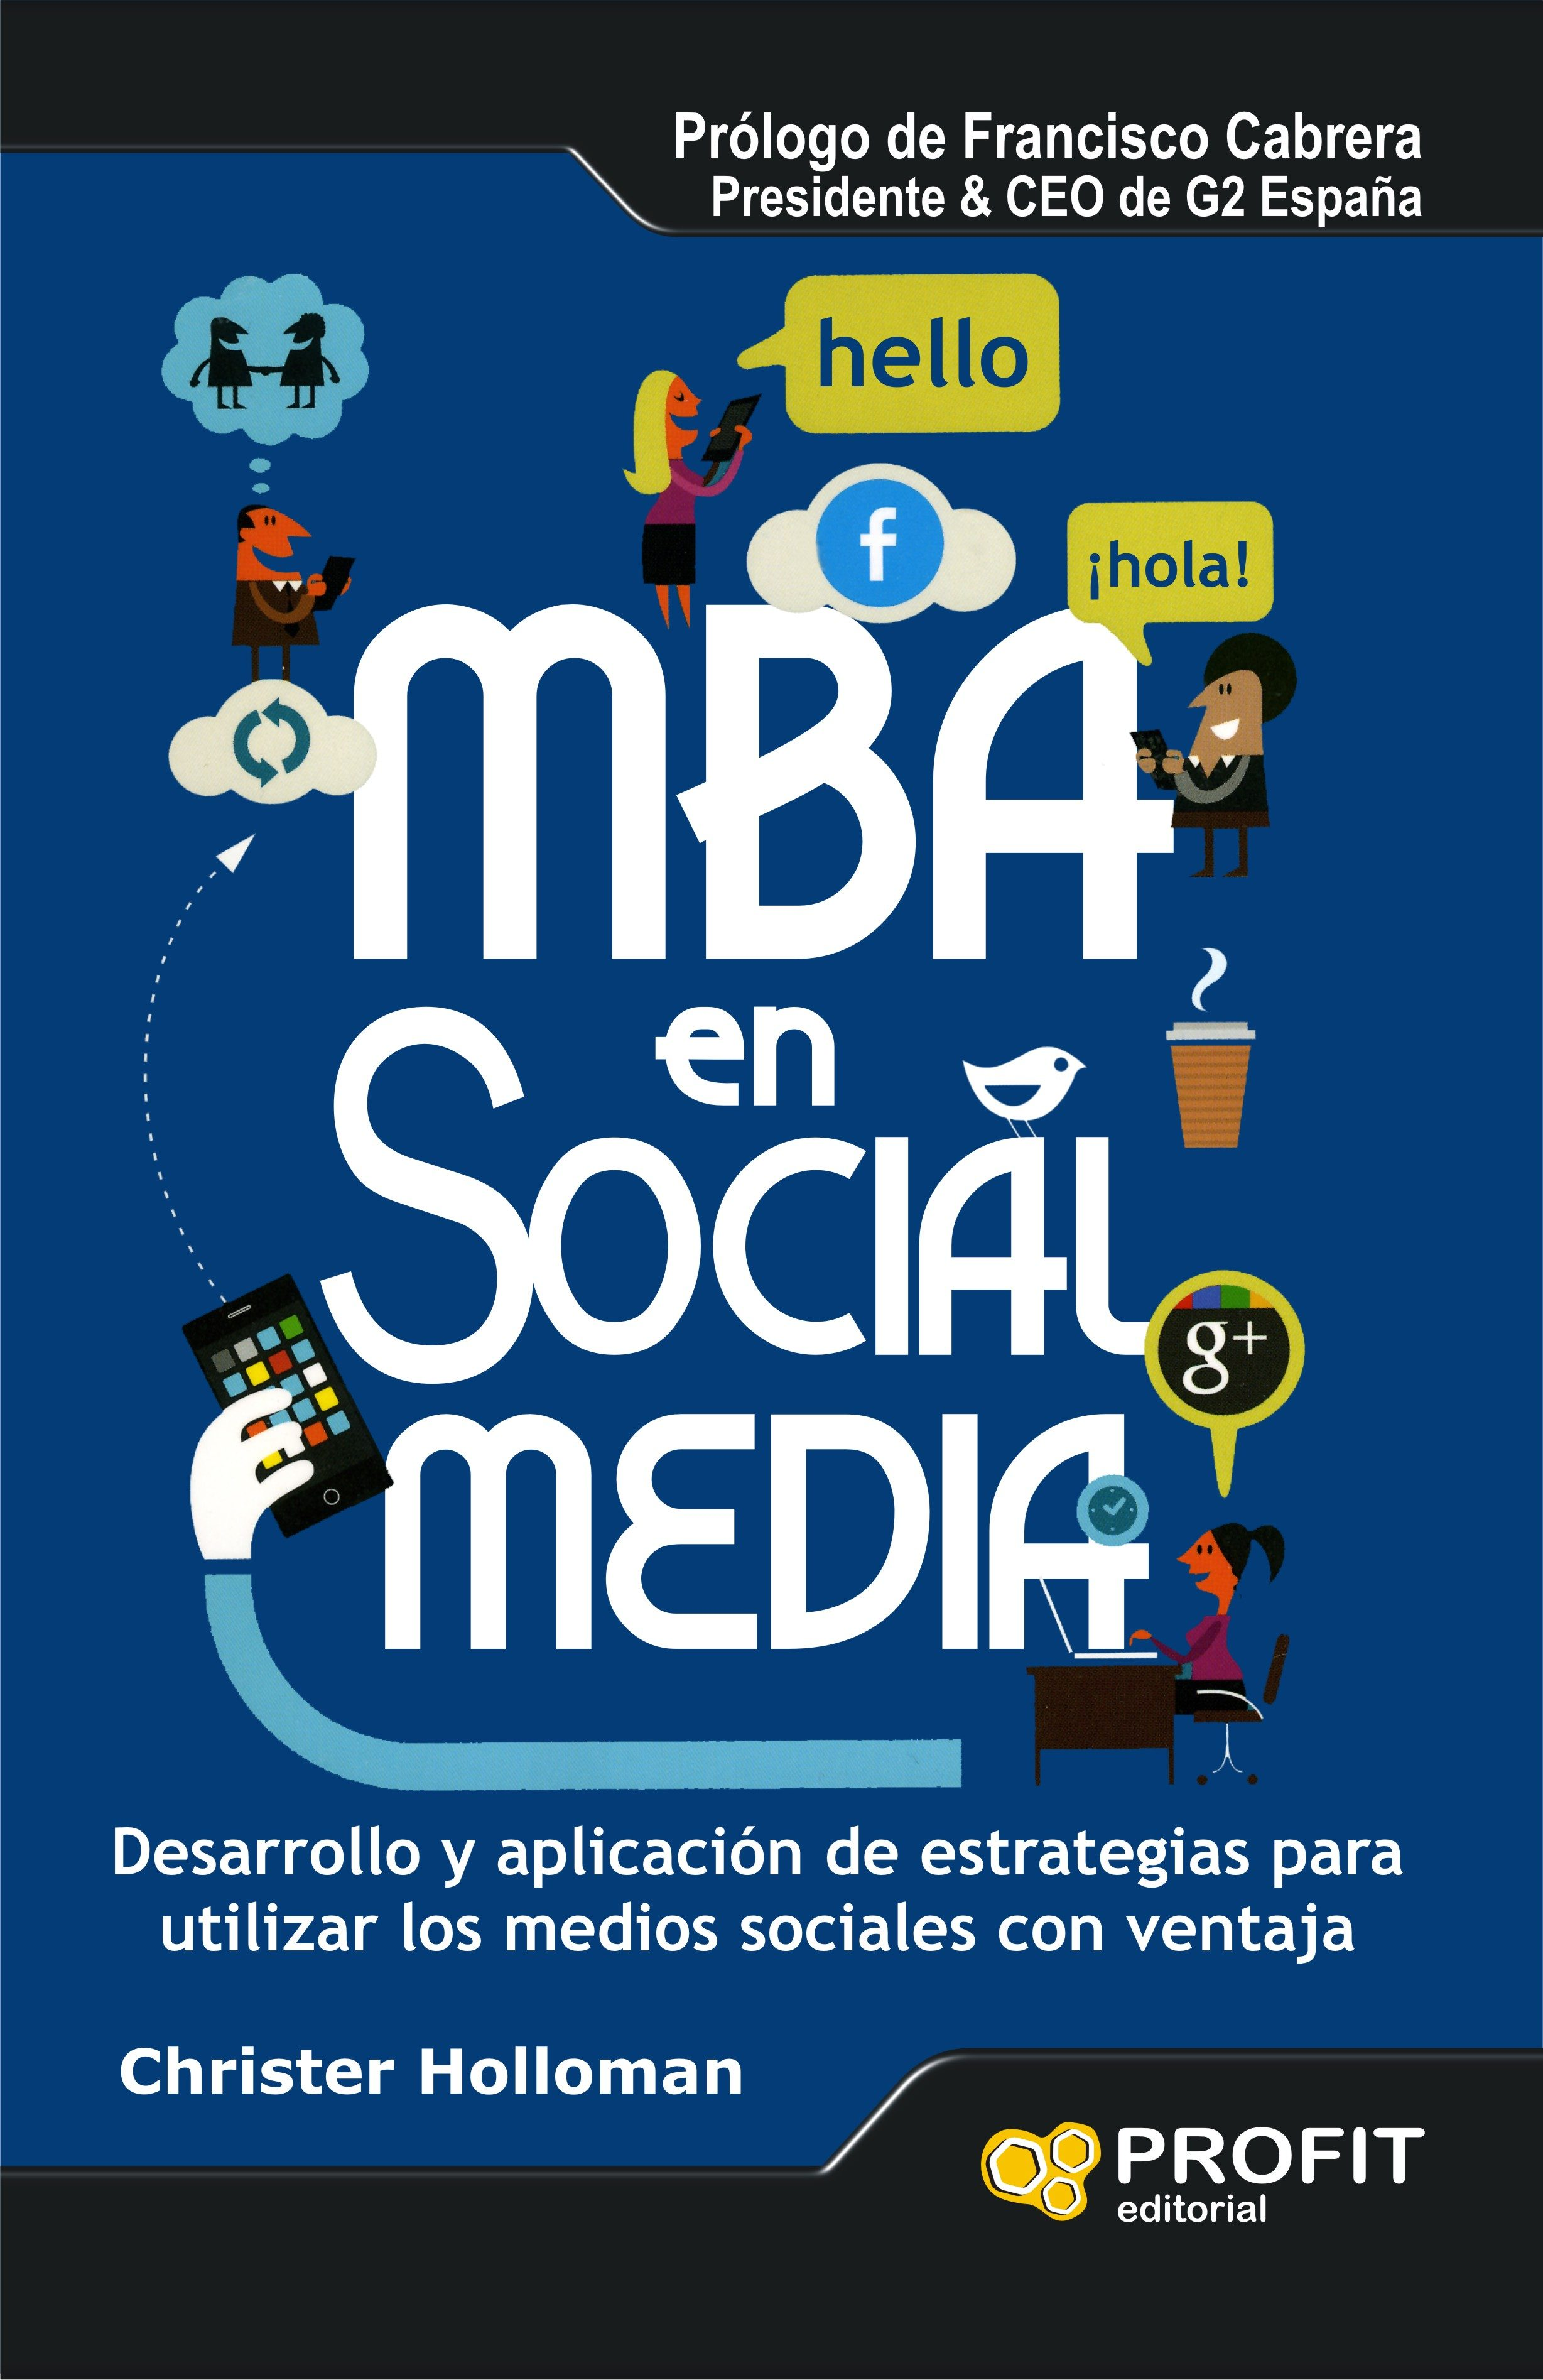 MBA en Social Media Christer Holloman